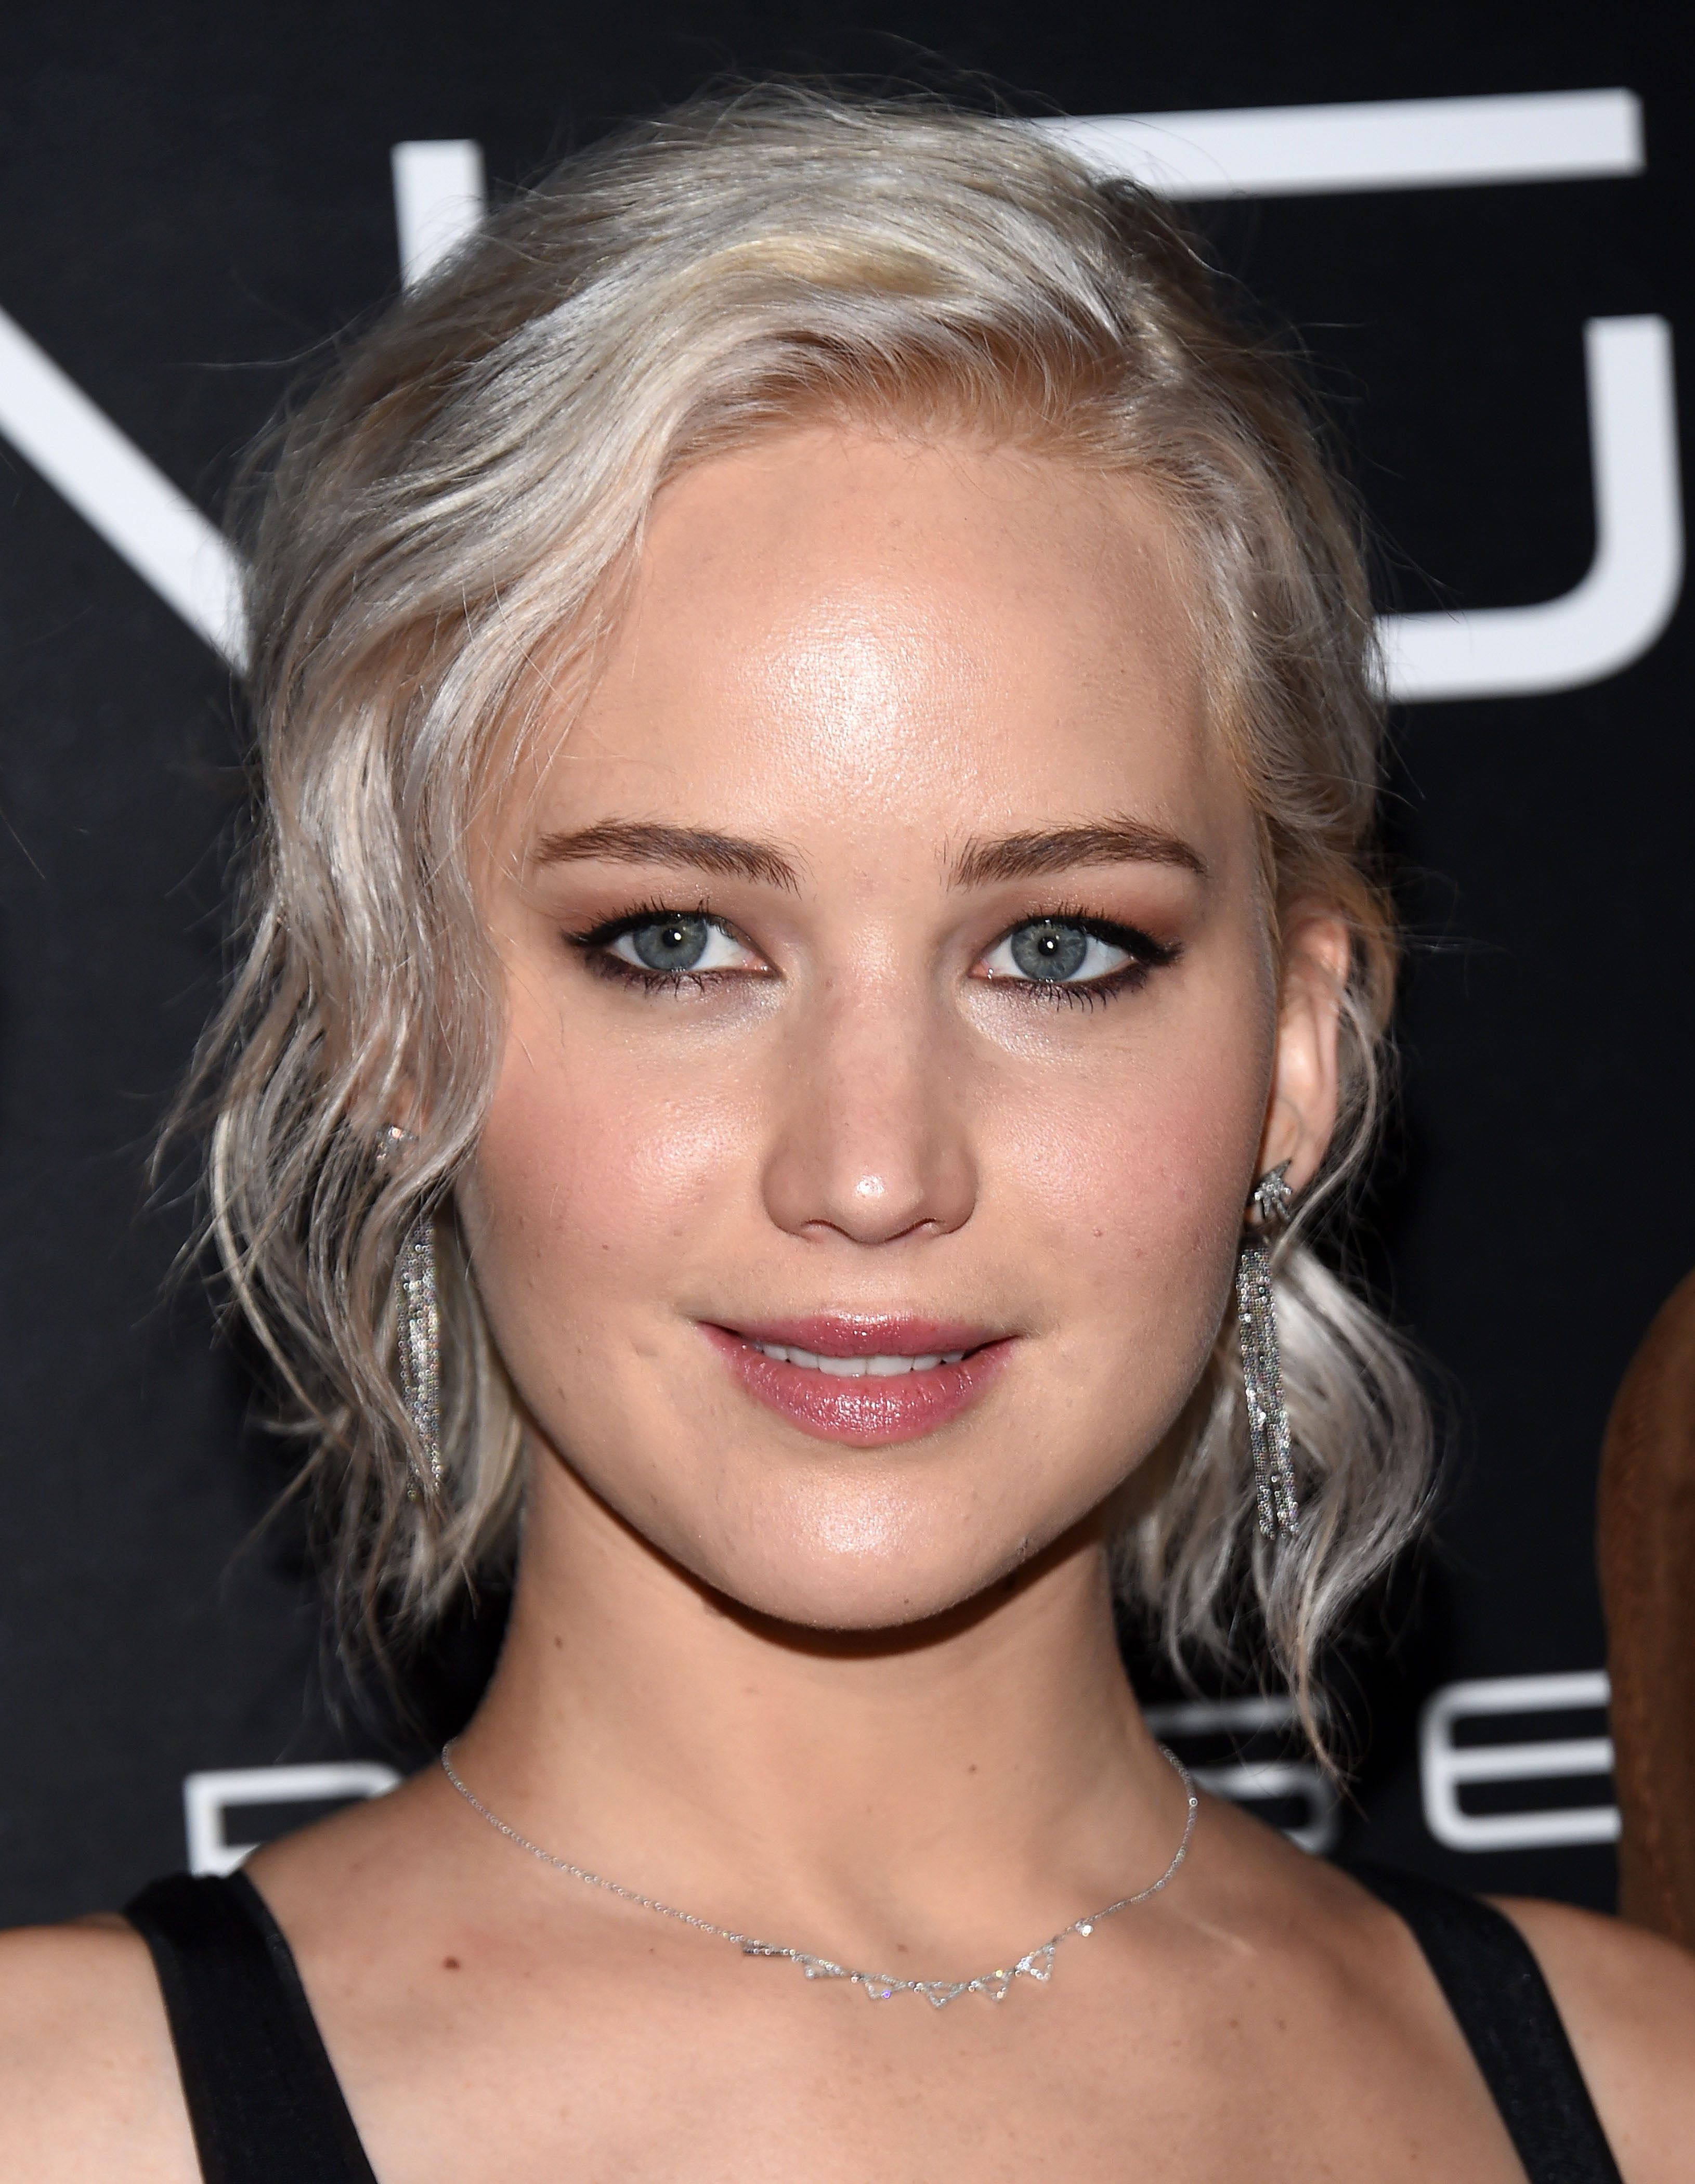 Jennifer Lawrence's Blonde Hair with Silver Highlights